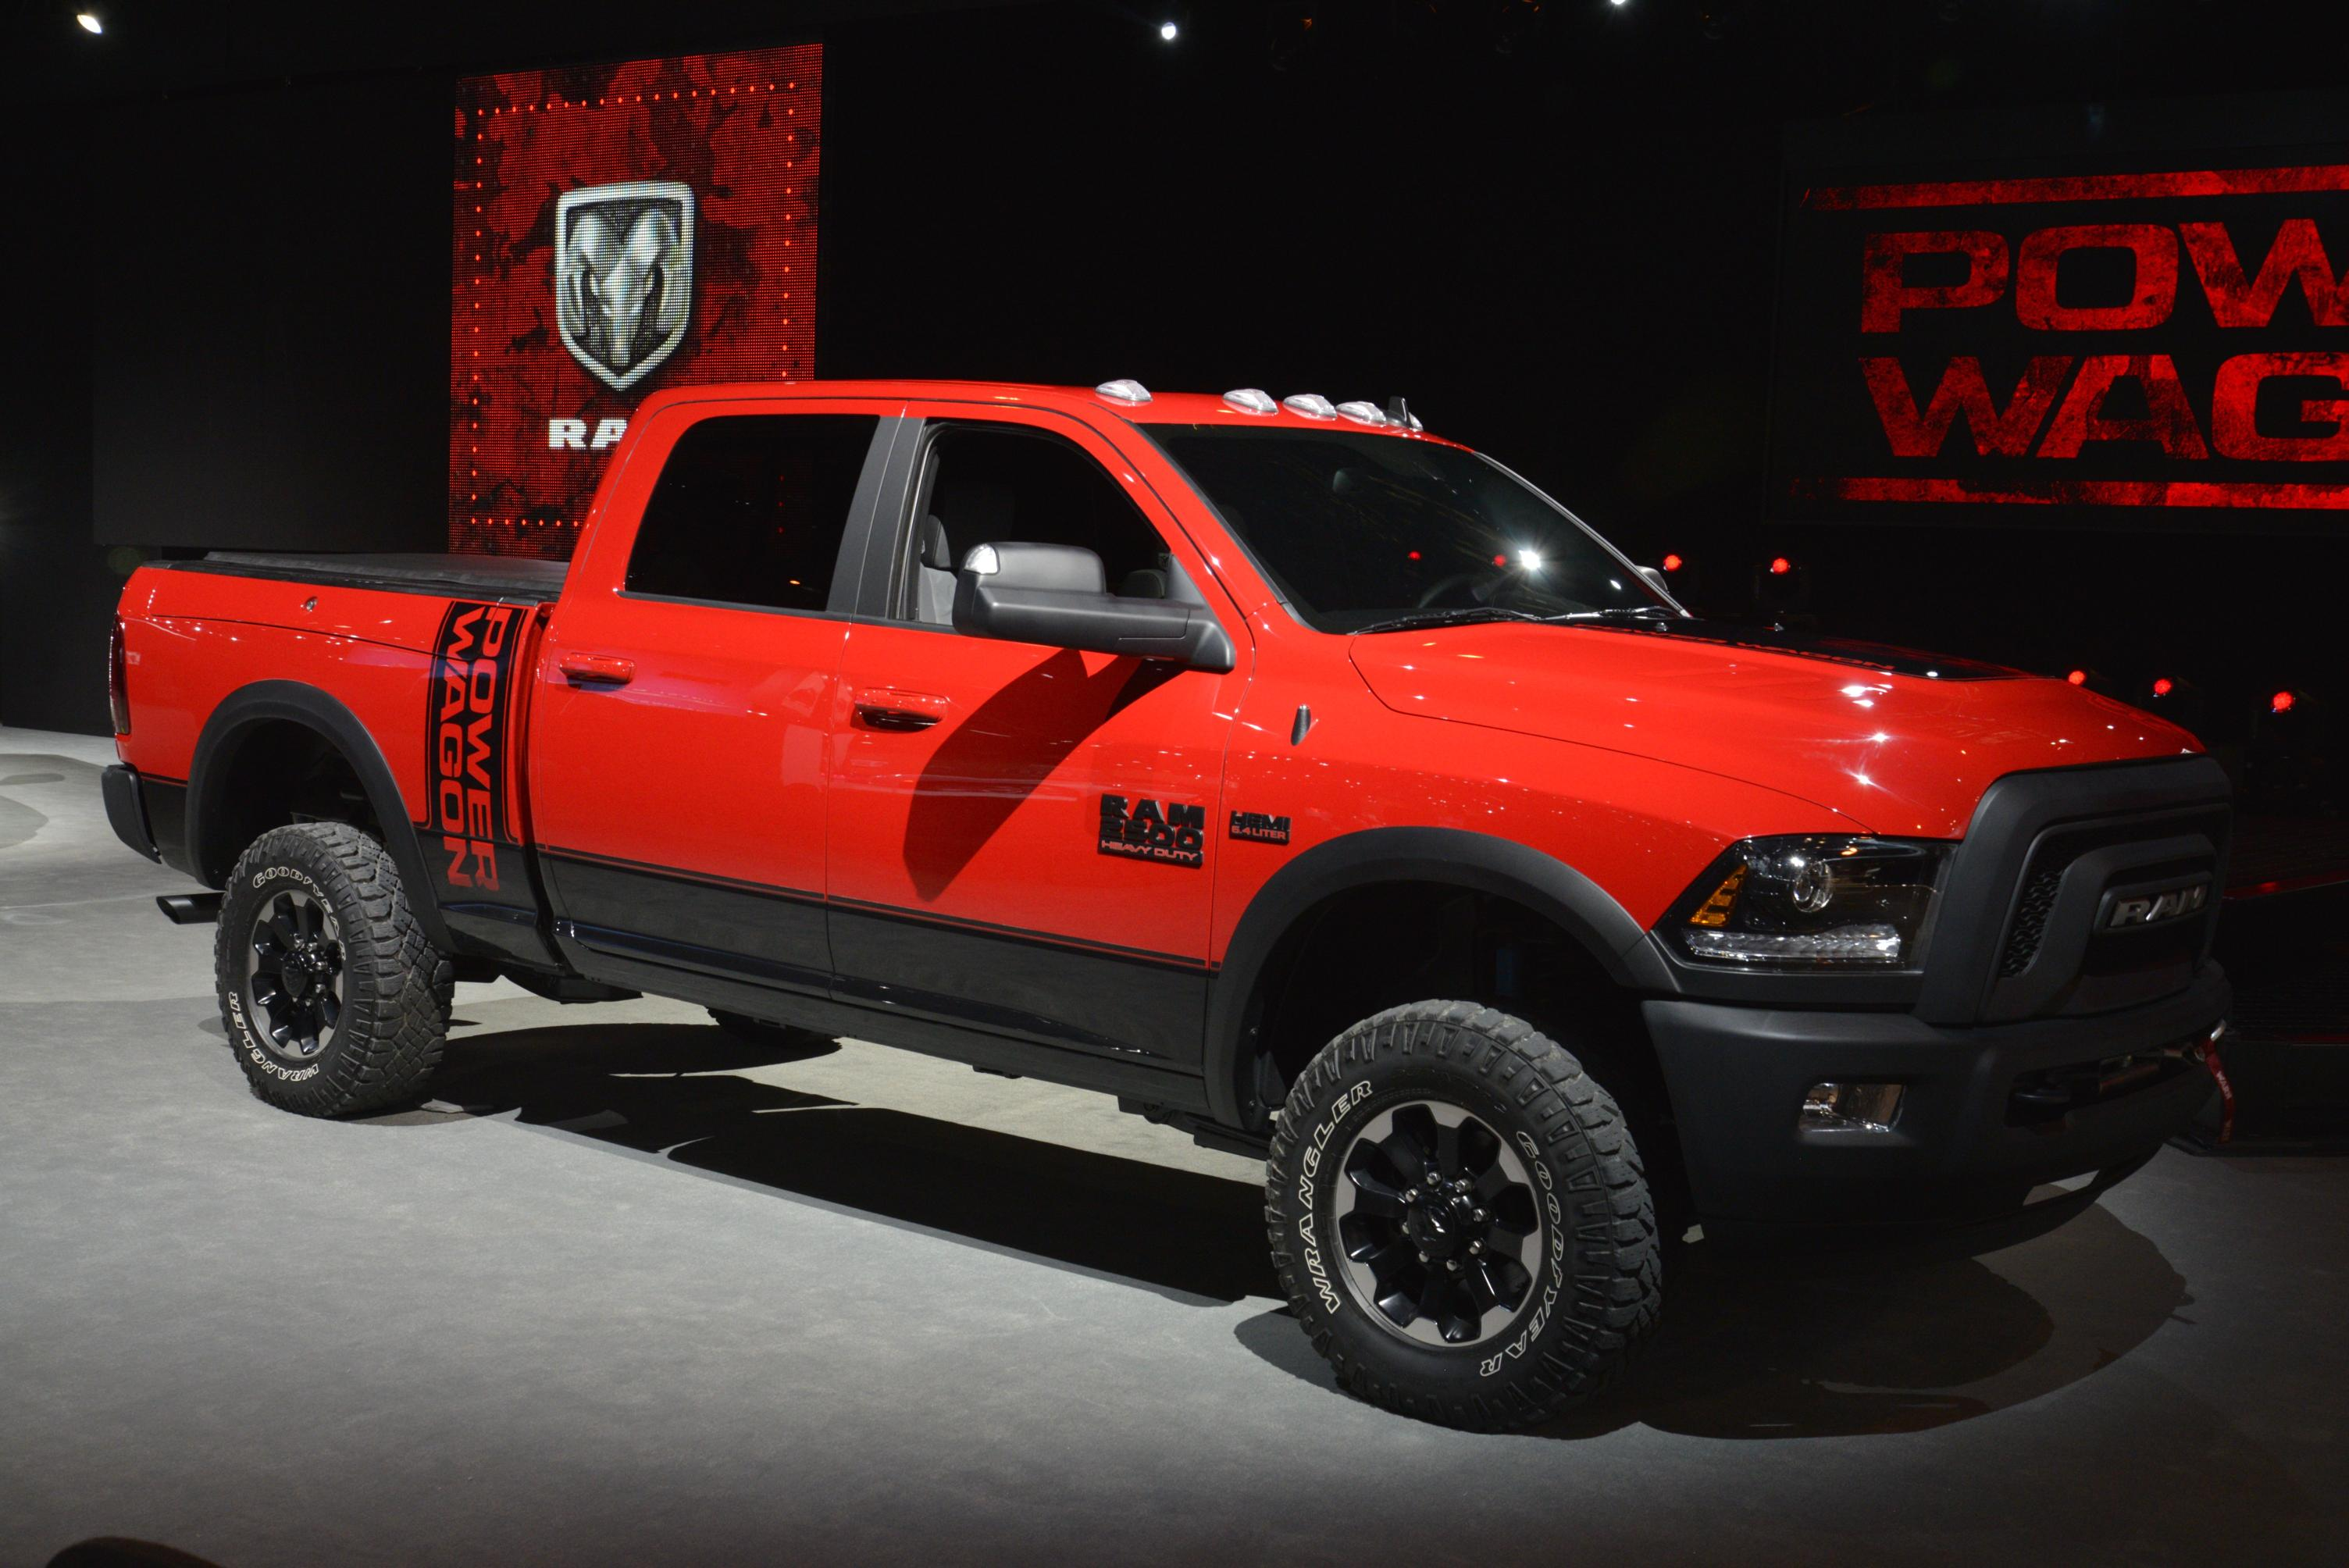 New 2017 Ram Power Wagon Available Fall 2016 2017 - 2018